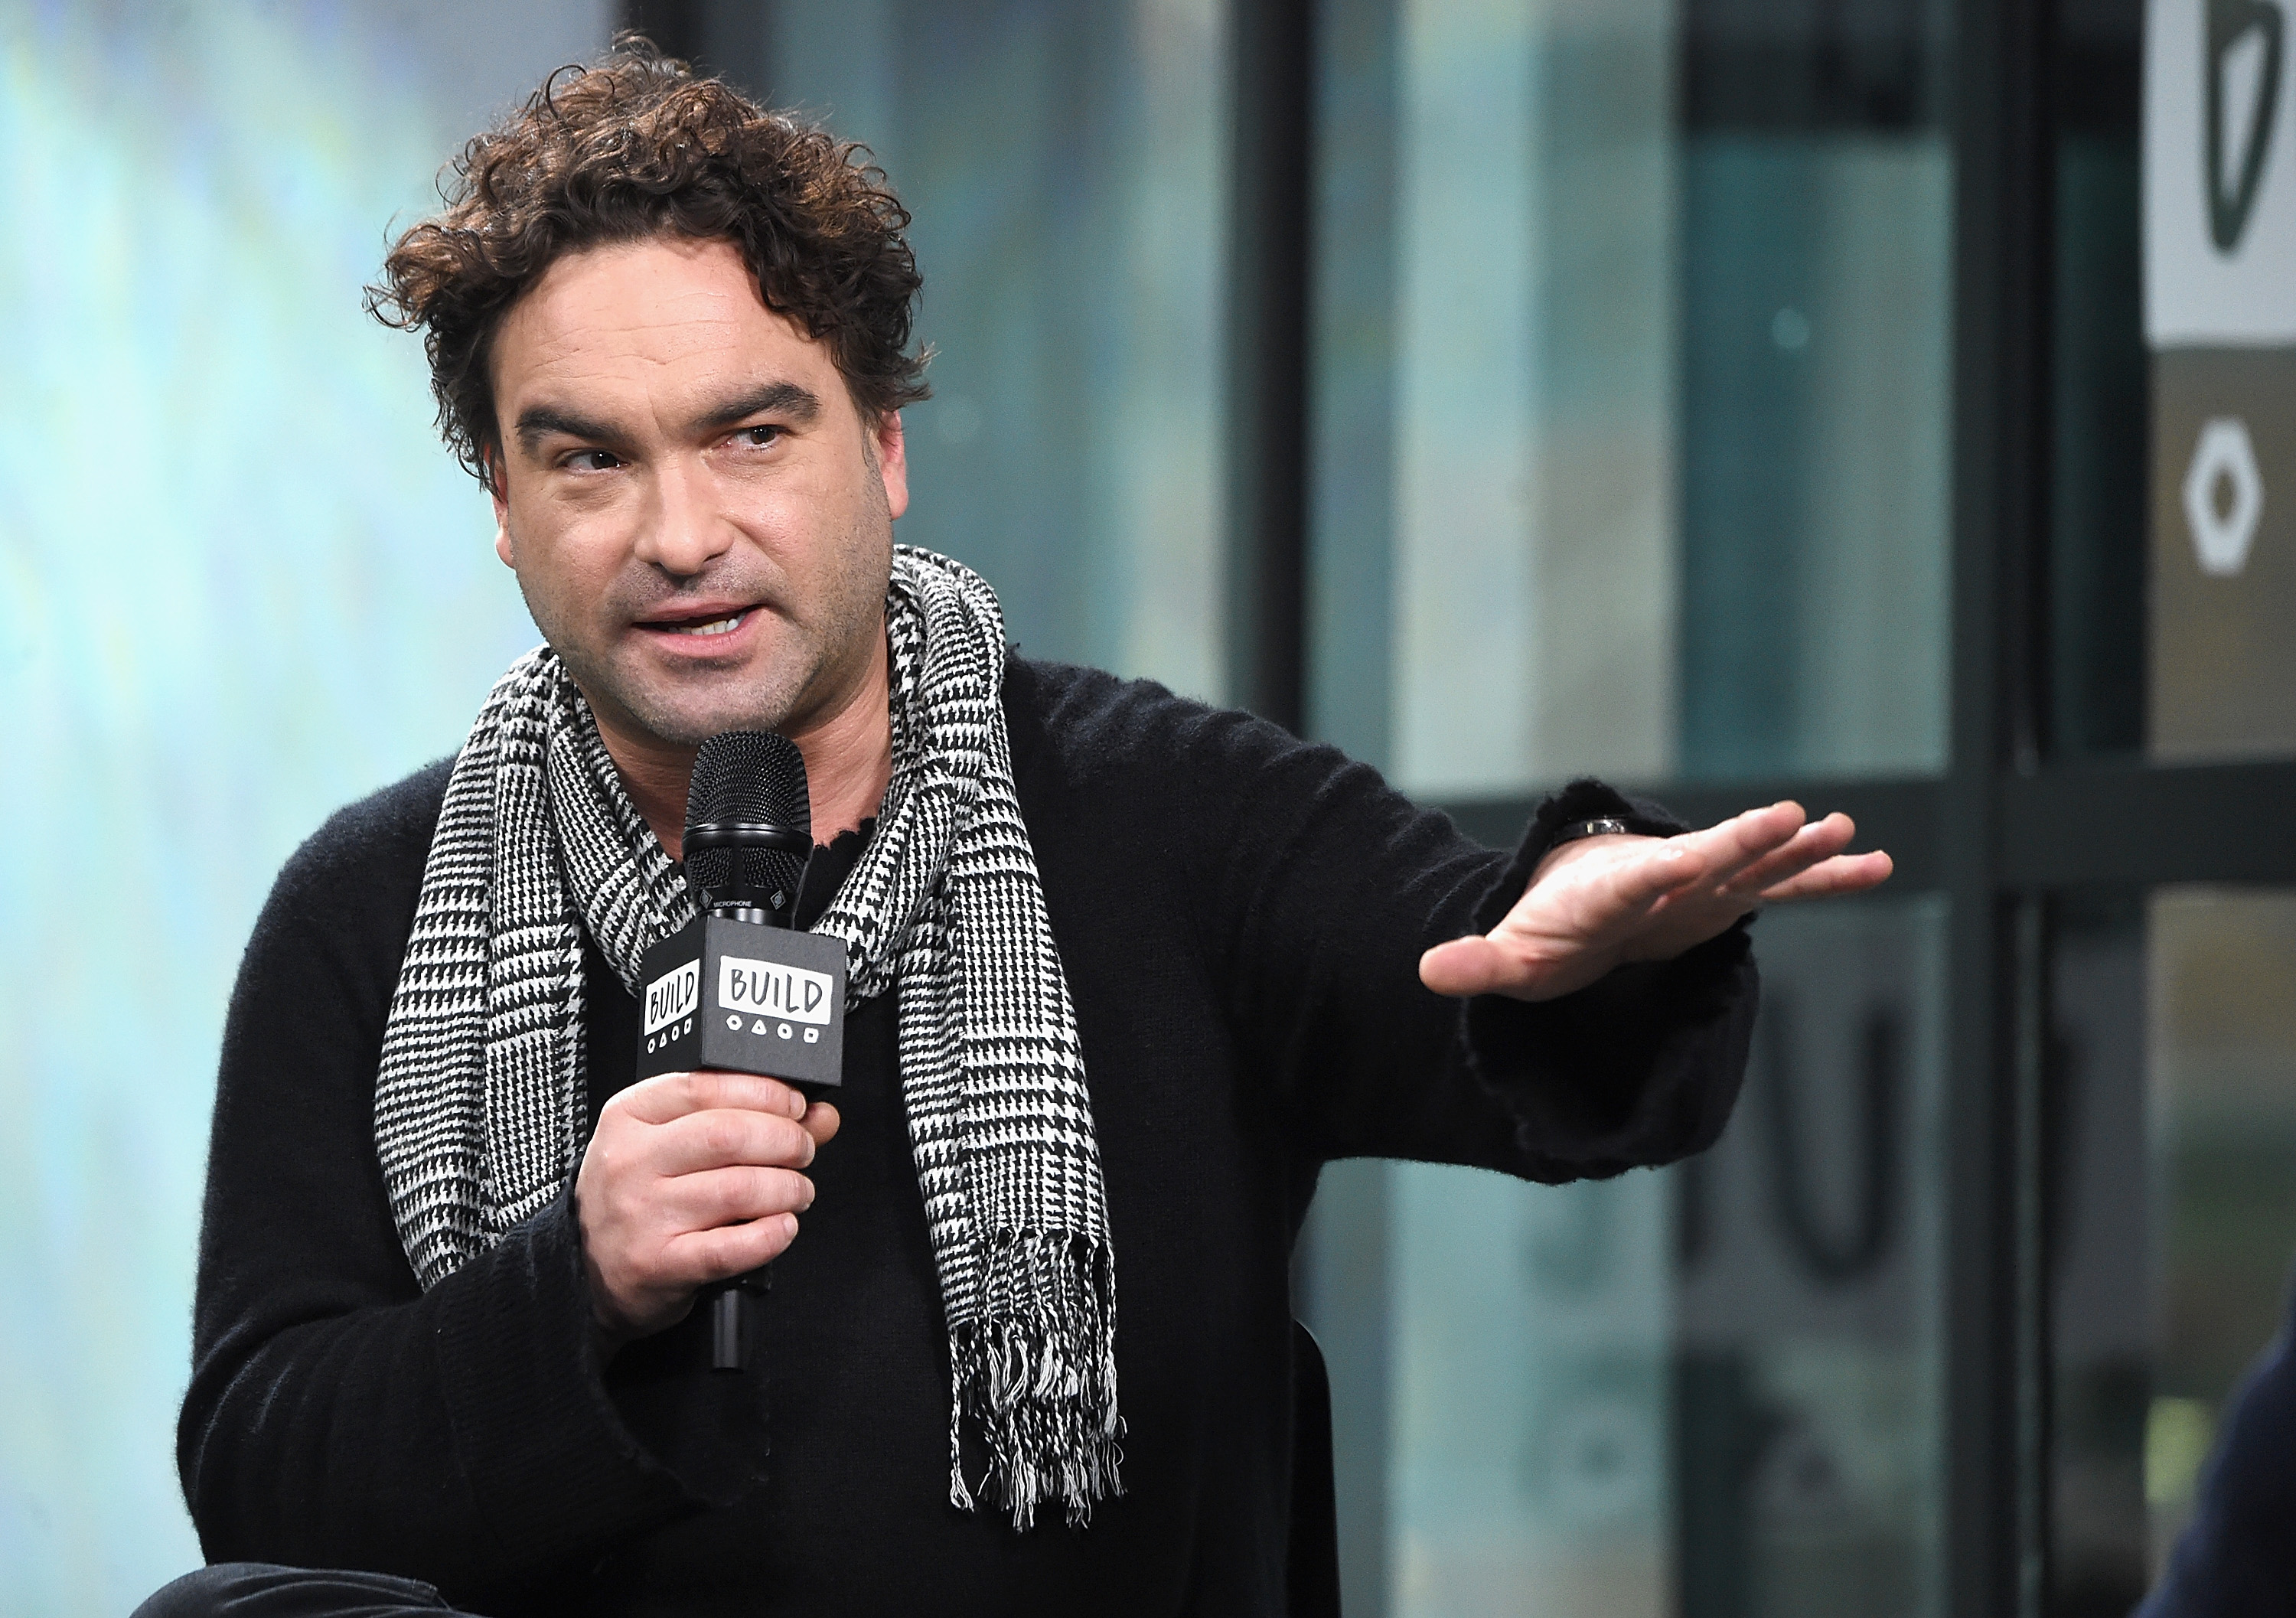 The Big Bang Theory's Johnny Galecki loved being a game show answer this week